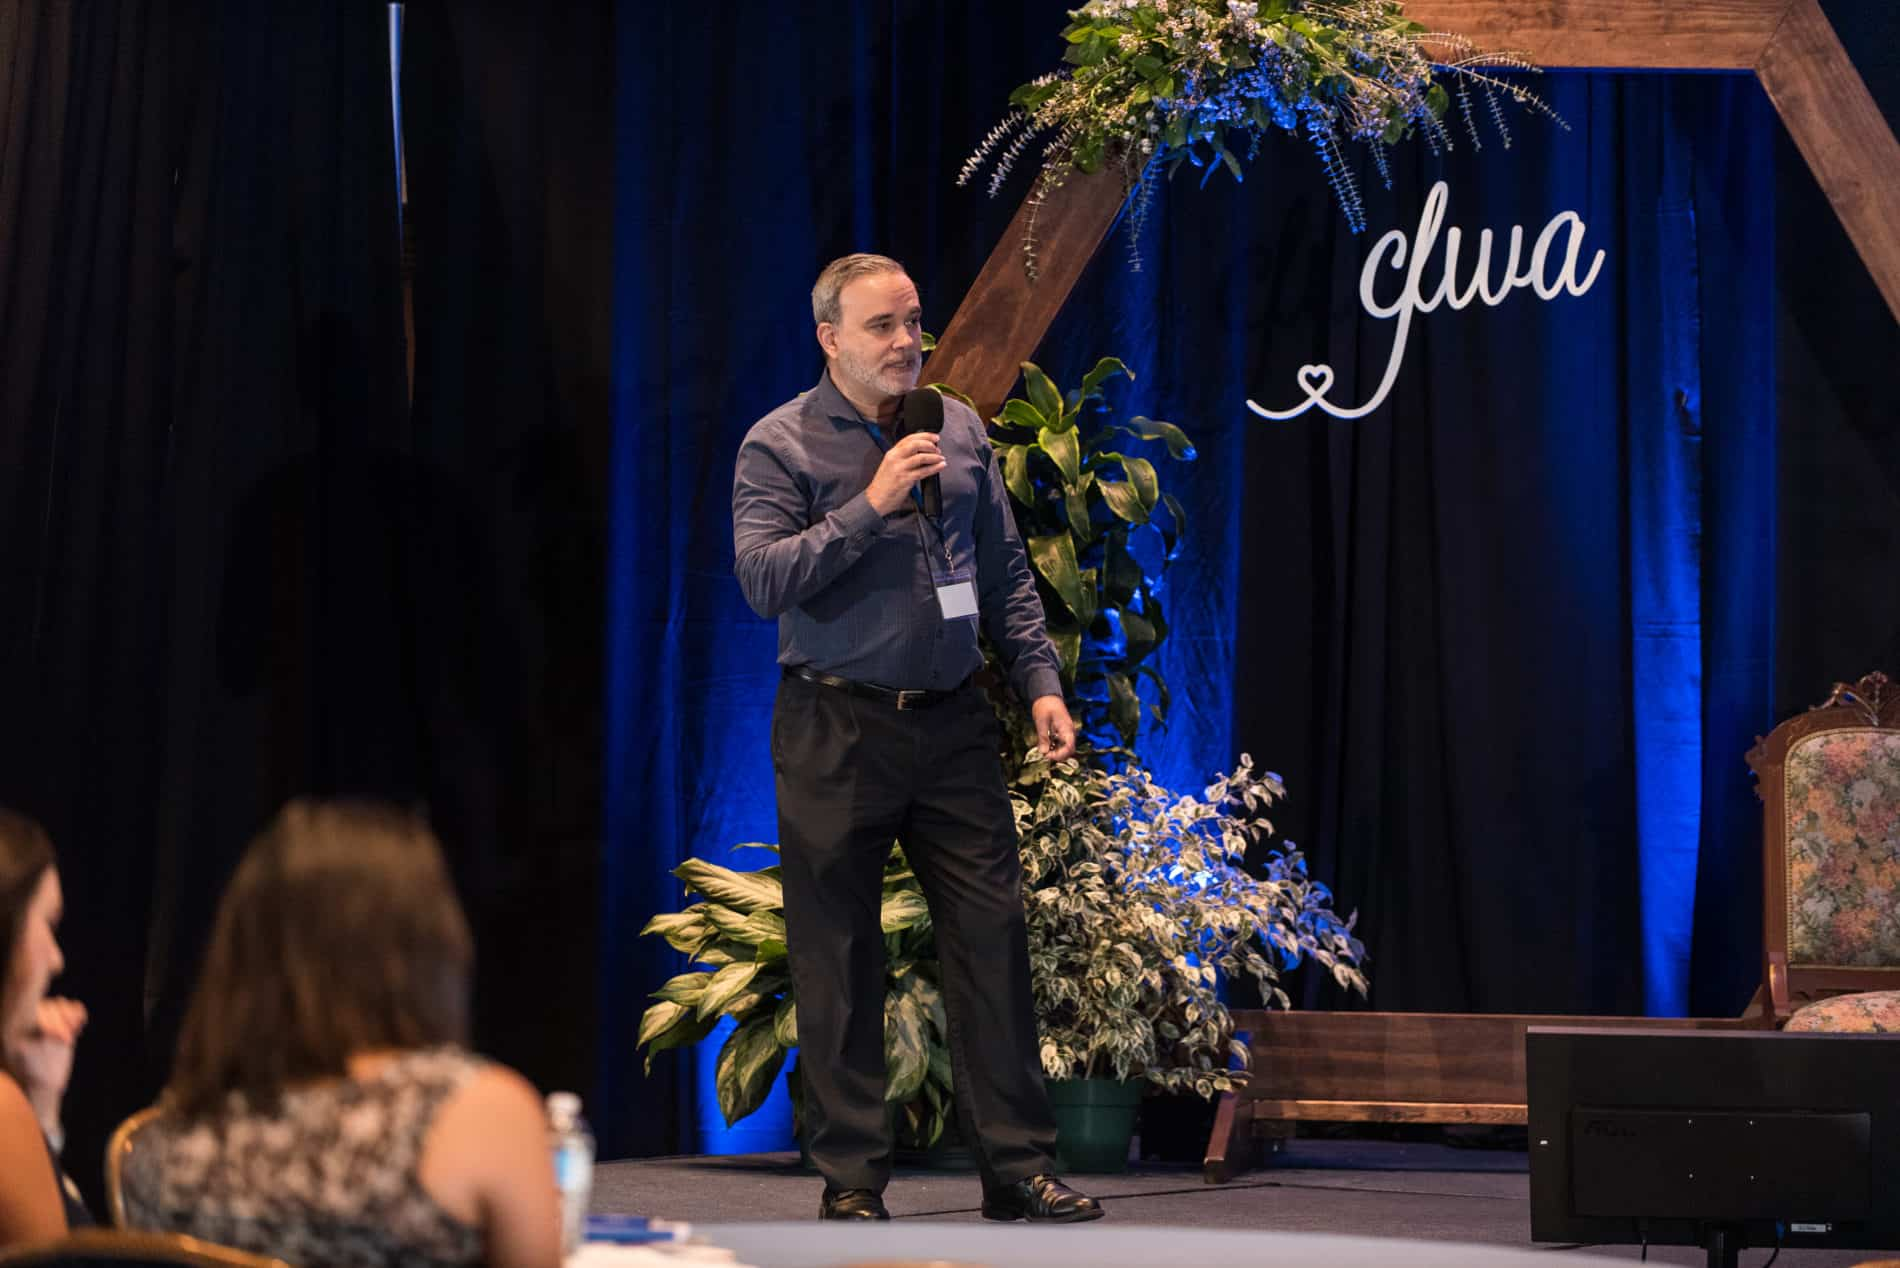 Paul Castaneda Agent of Change CEO Speaks at CFWA The Summit Conference.